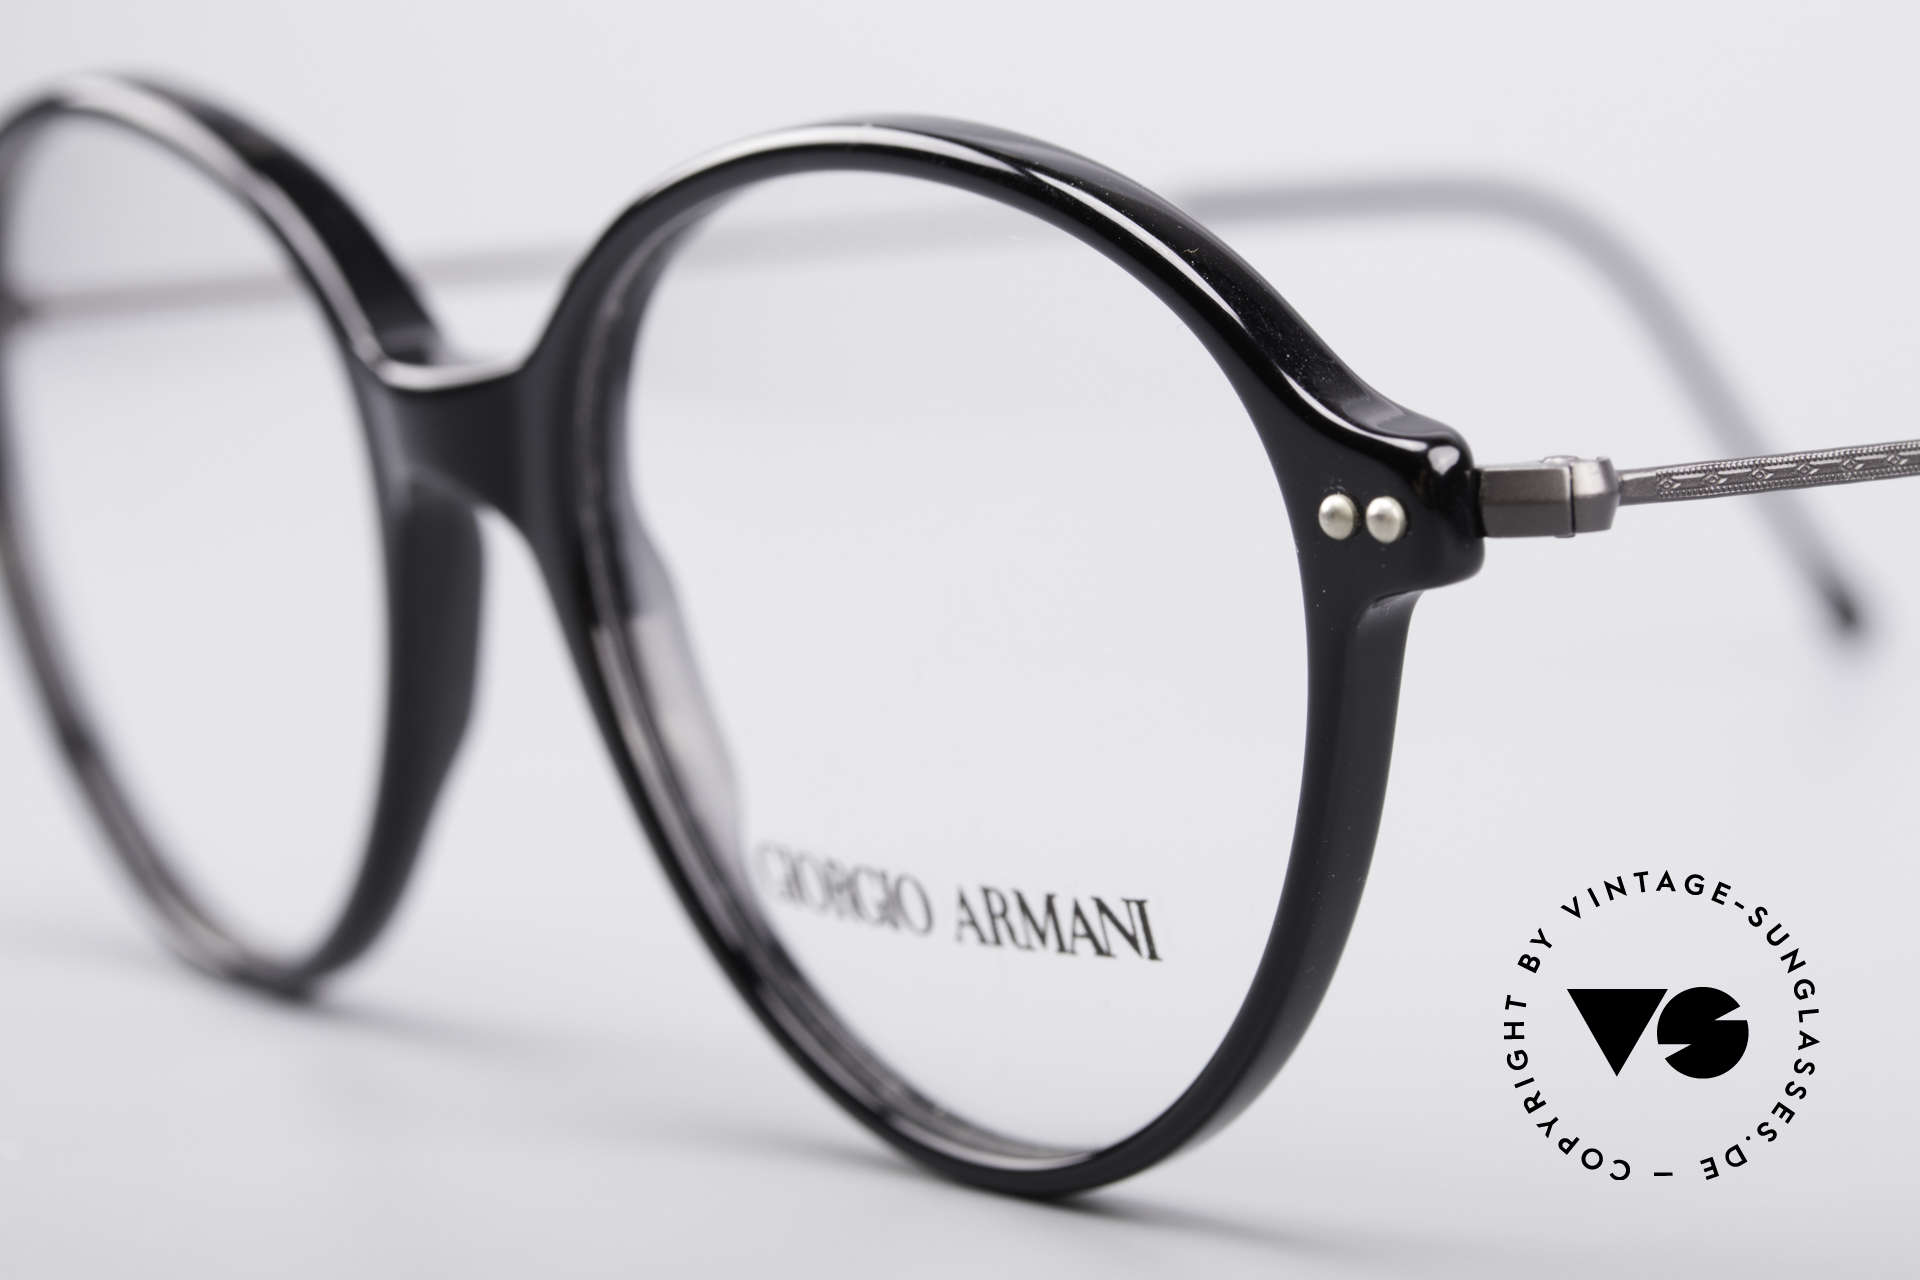 Giorgio Armani 374 90's Unisex Vintage Glasses, top quality and very comfortable (weighs only 9g), Made for Men and Women